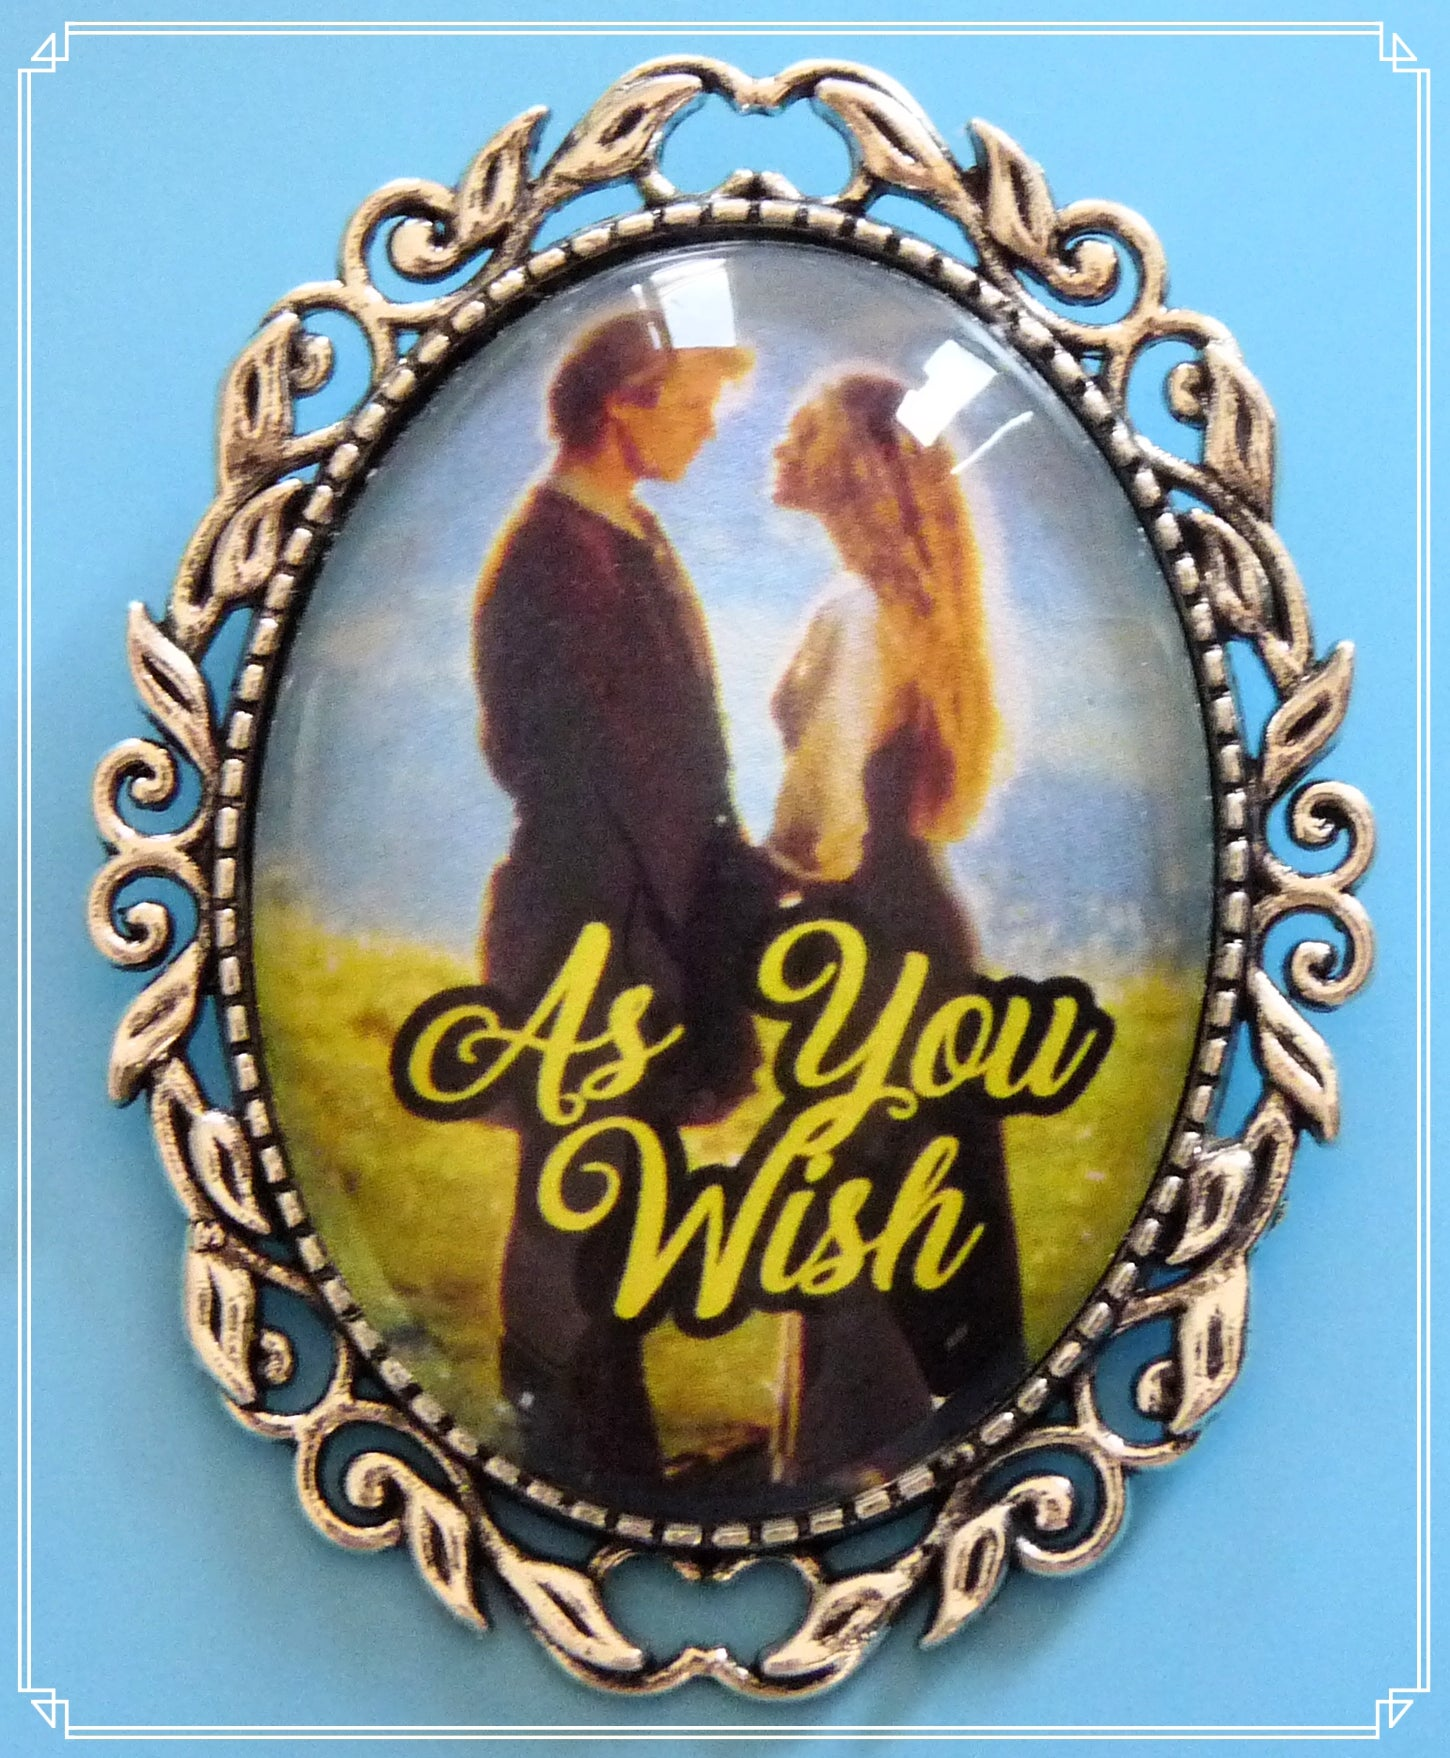 As You Wish brooch